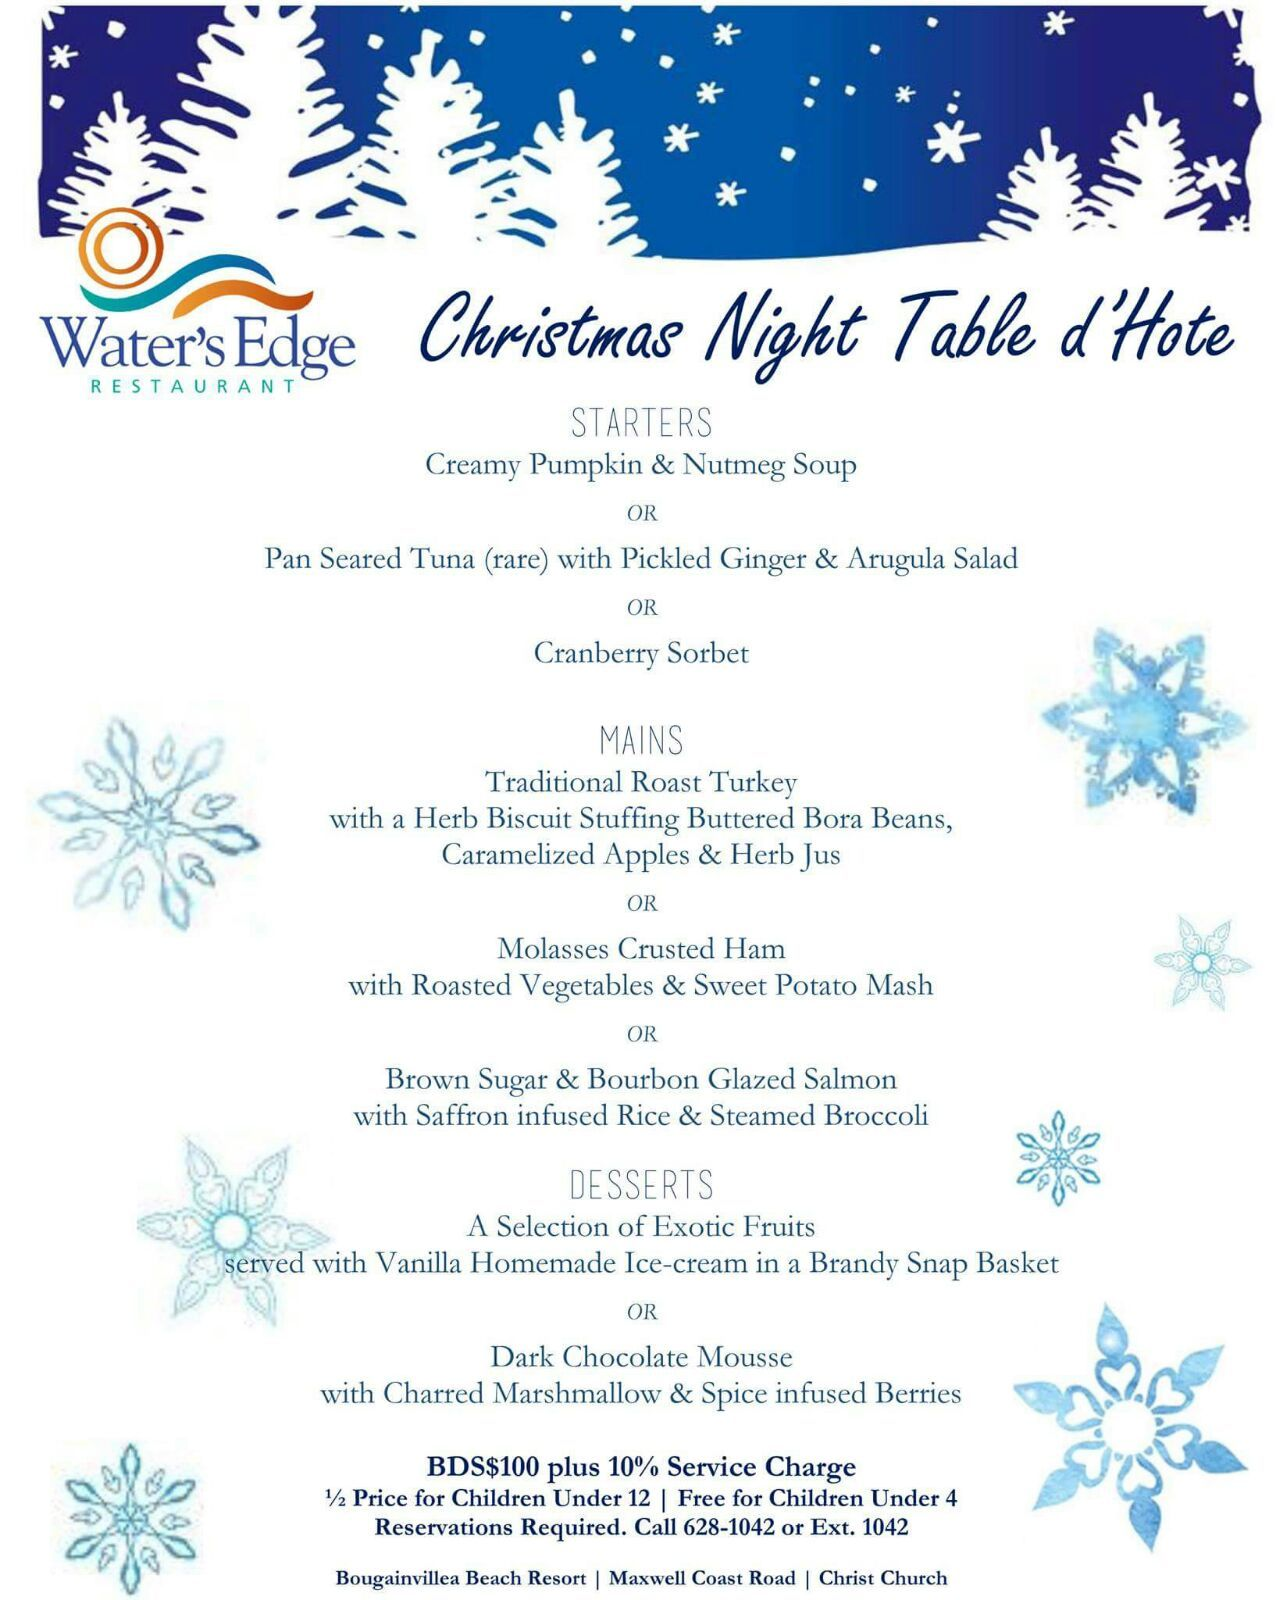 christmas night table d'hote at water's edge - barbados events